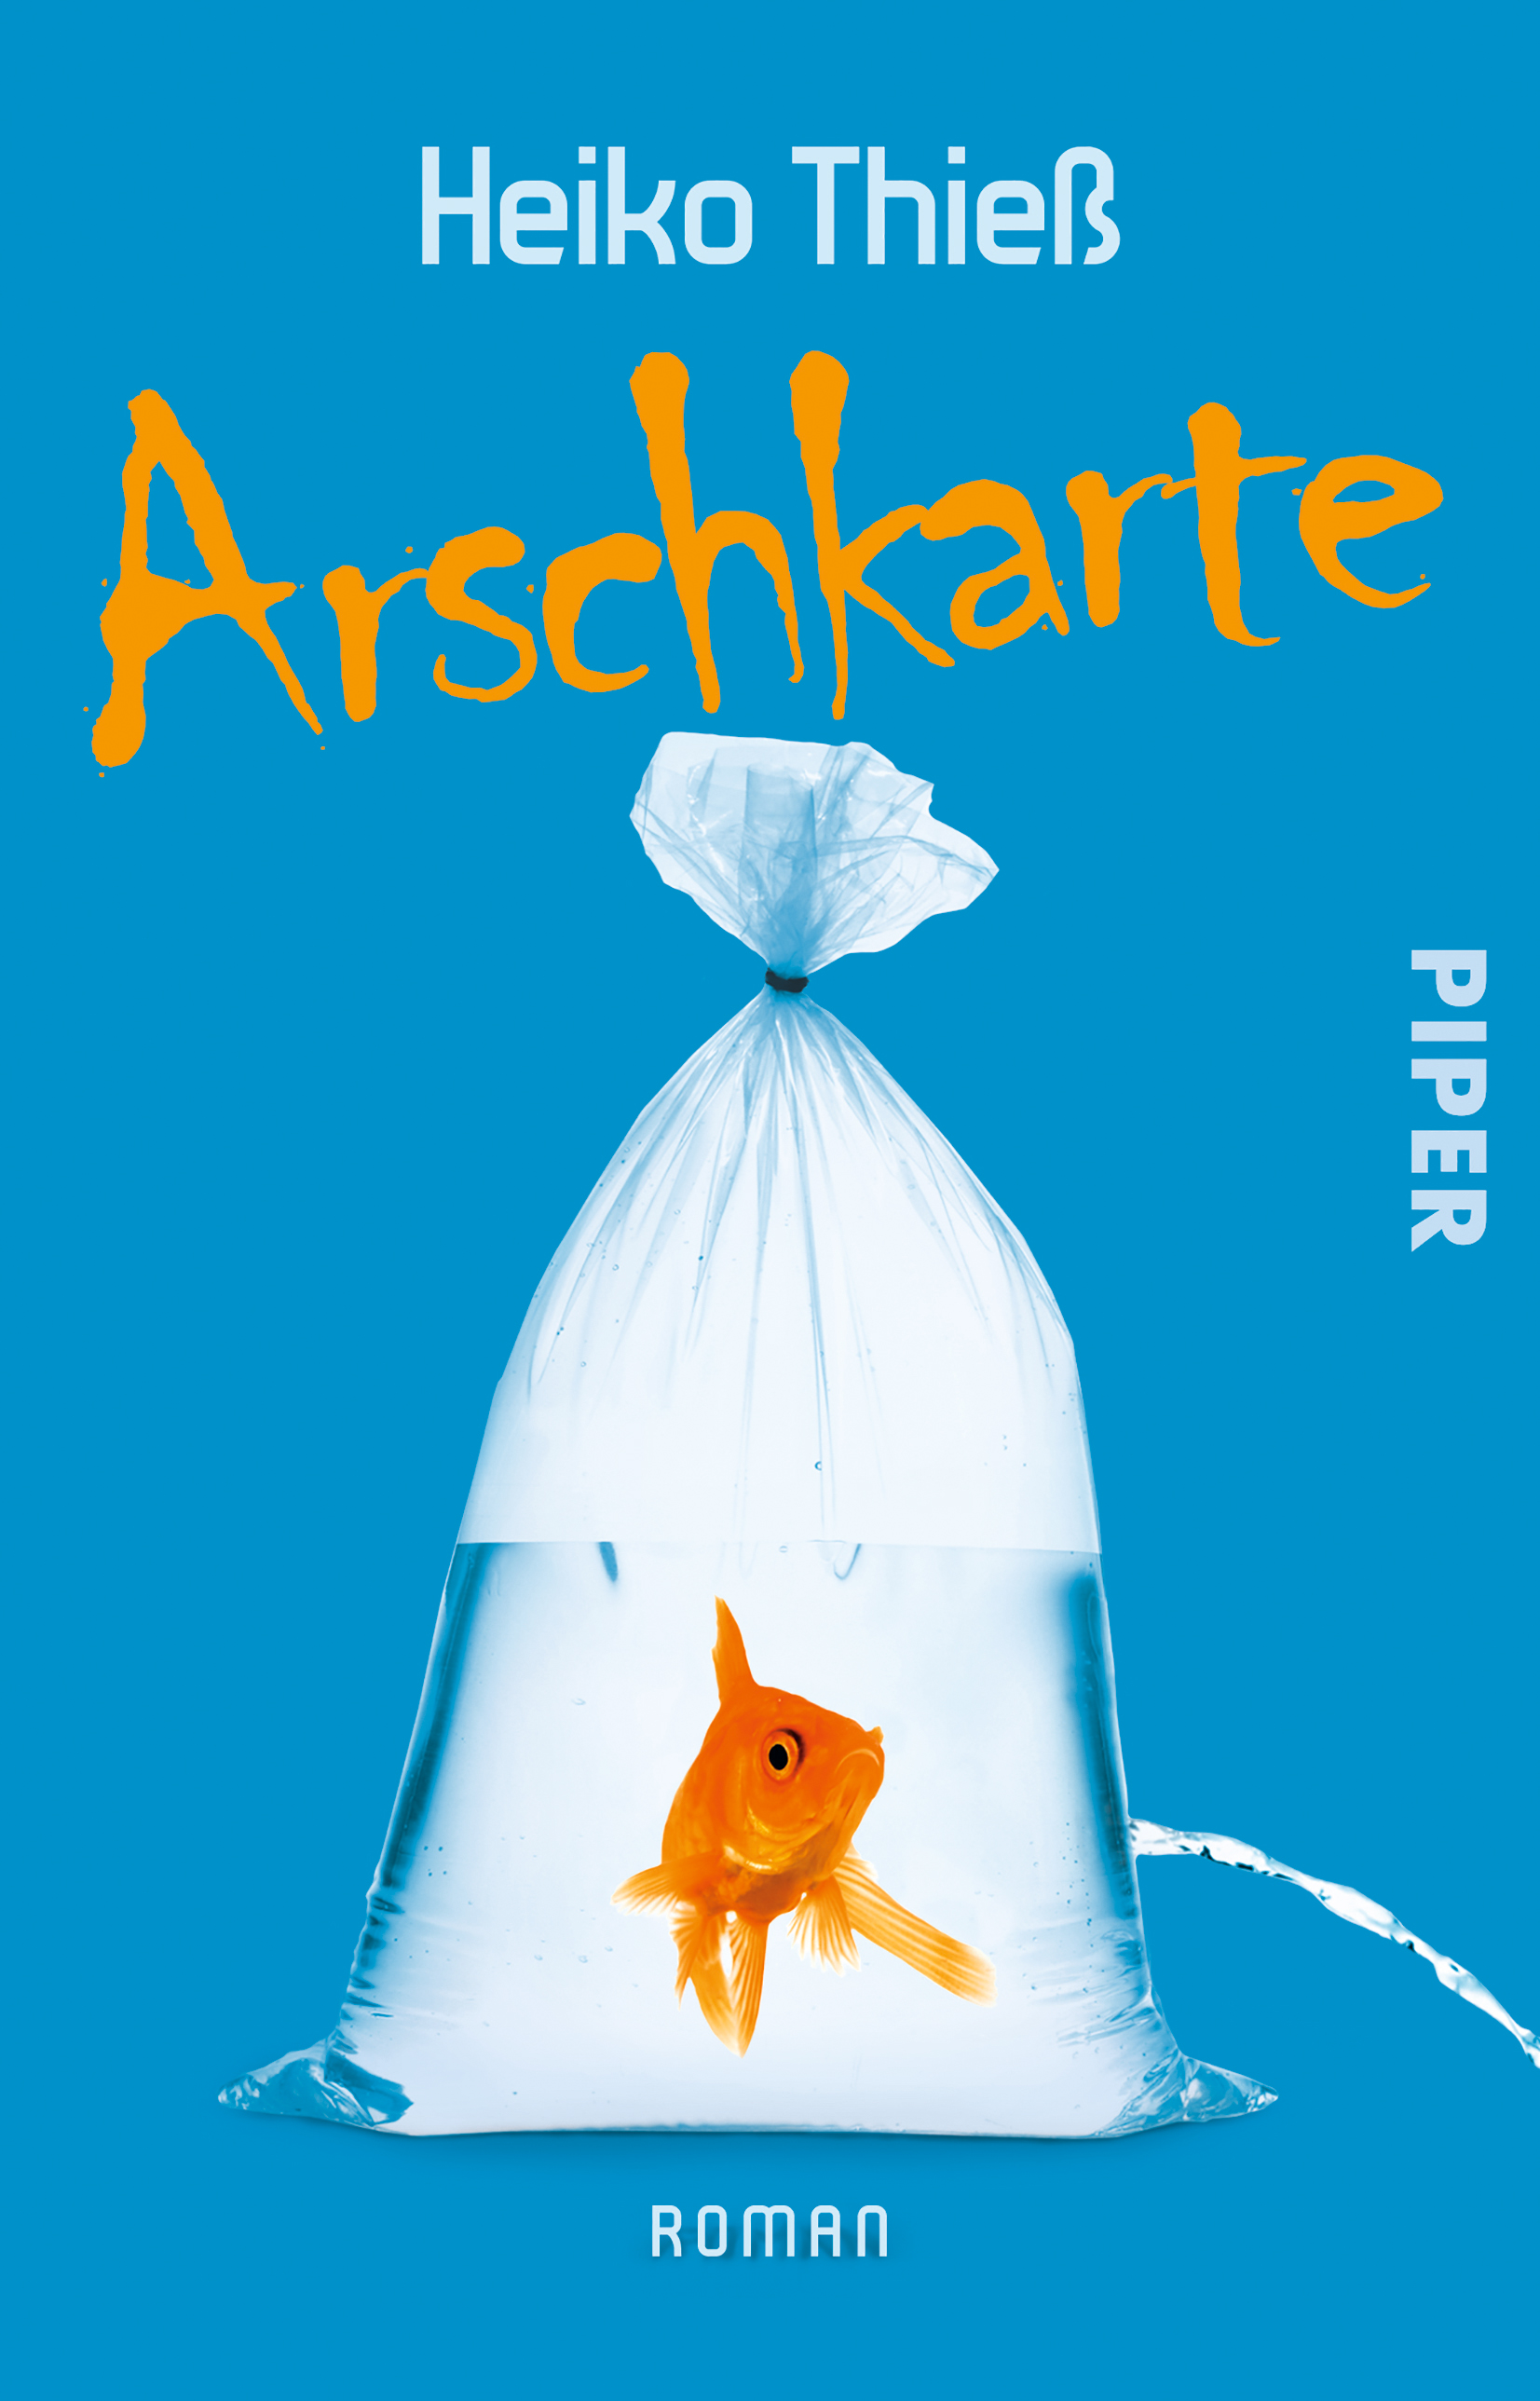 https://www.piper.de/buecher/arschkarte-isbn-978-3-492-30795-6